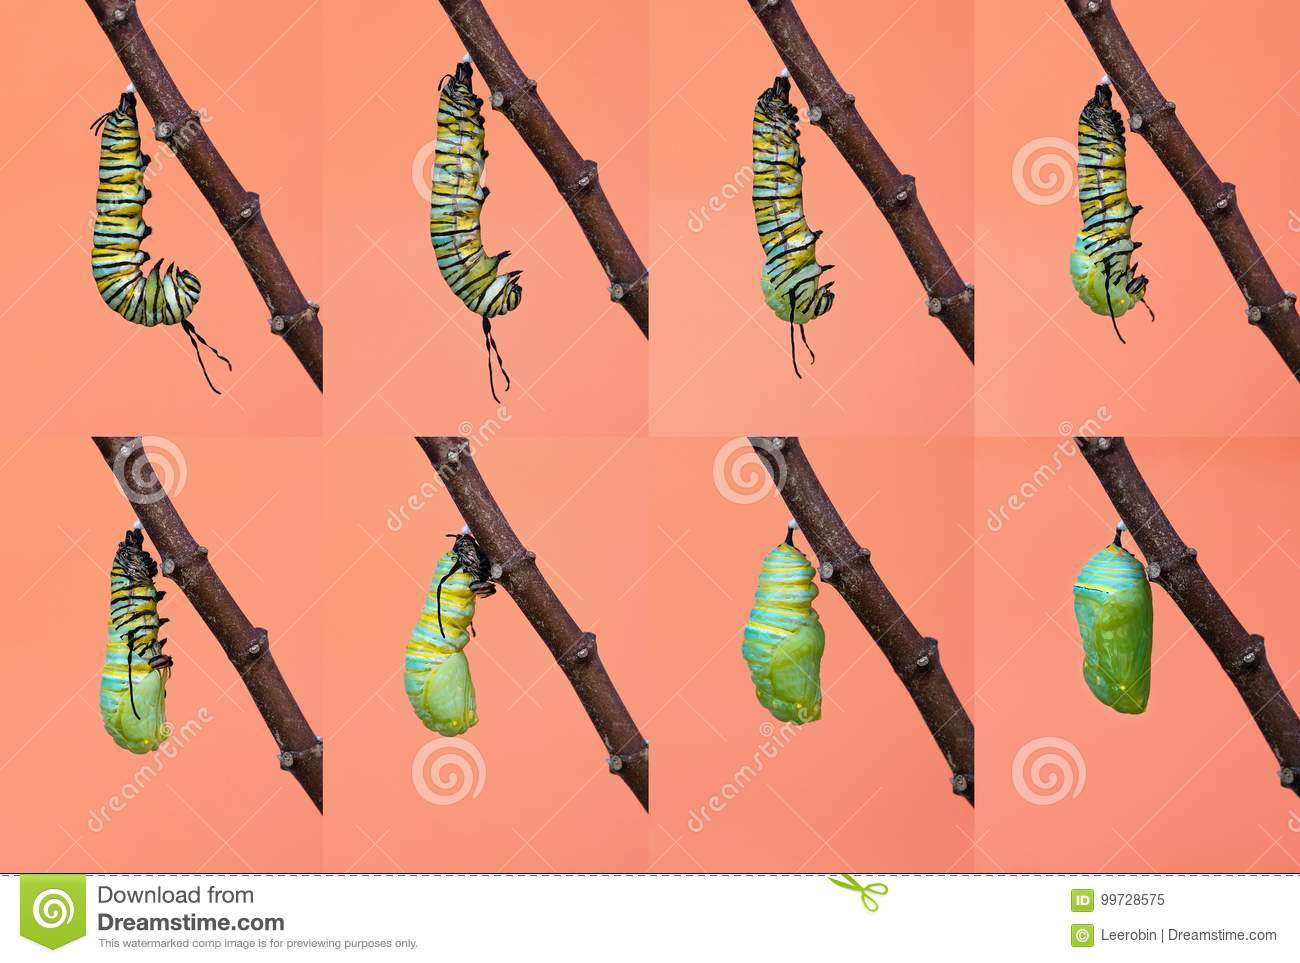 Monarch butterfly metamorphosis from caterpillar to chrysalis